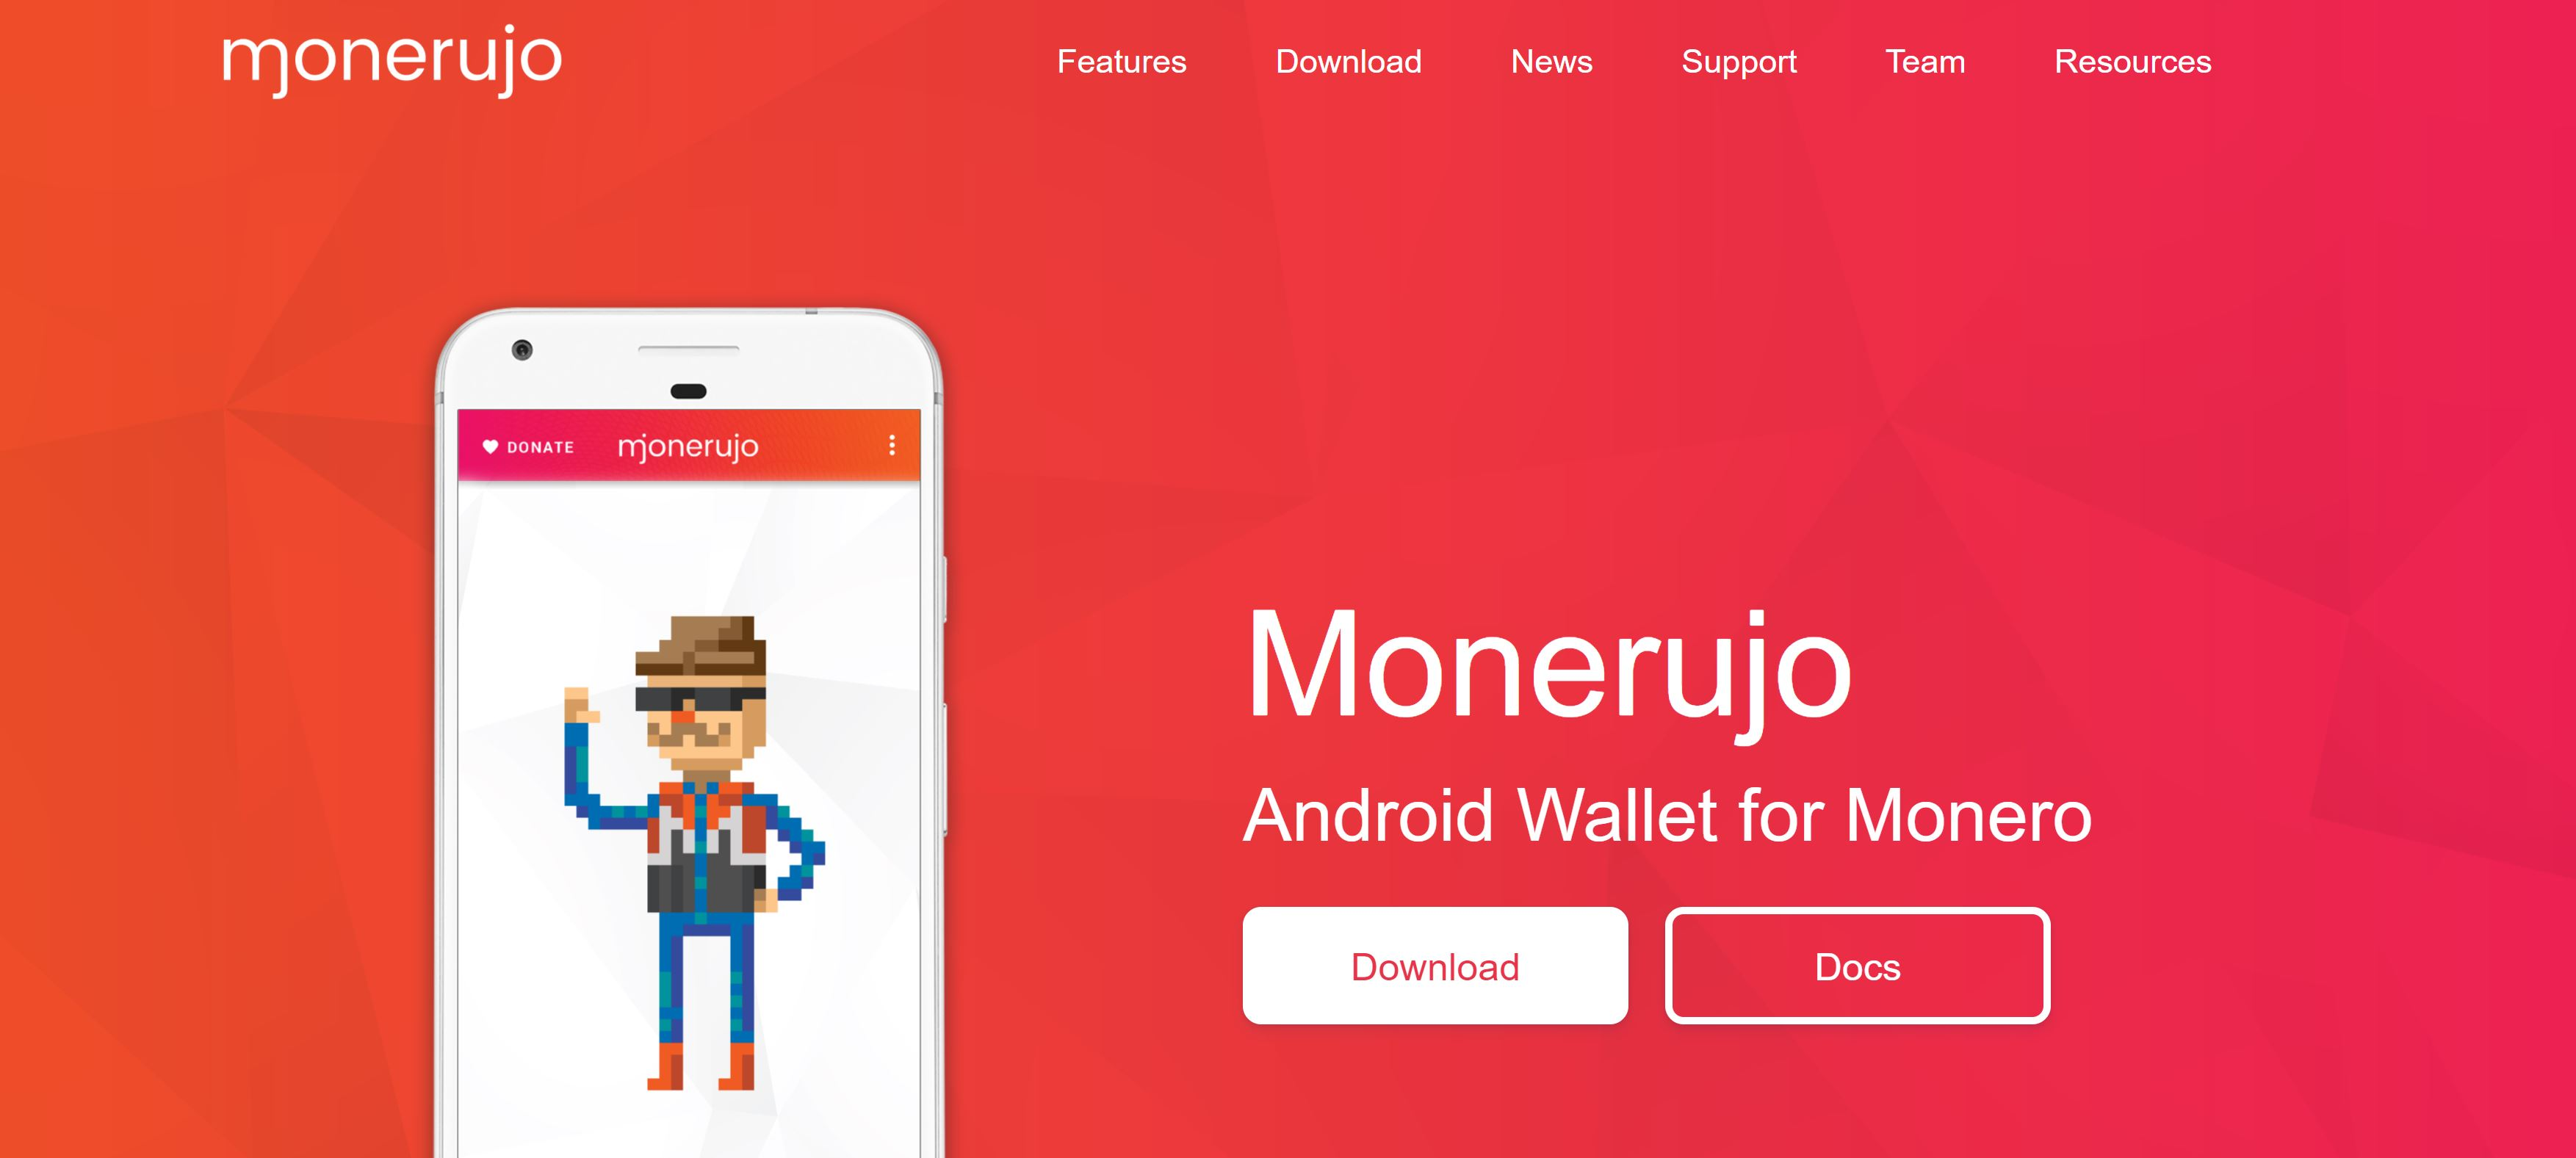 Monerujo Monero Wallet-website